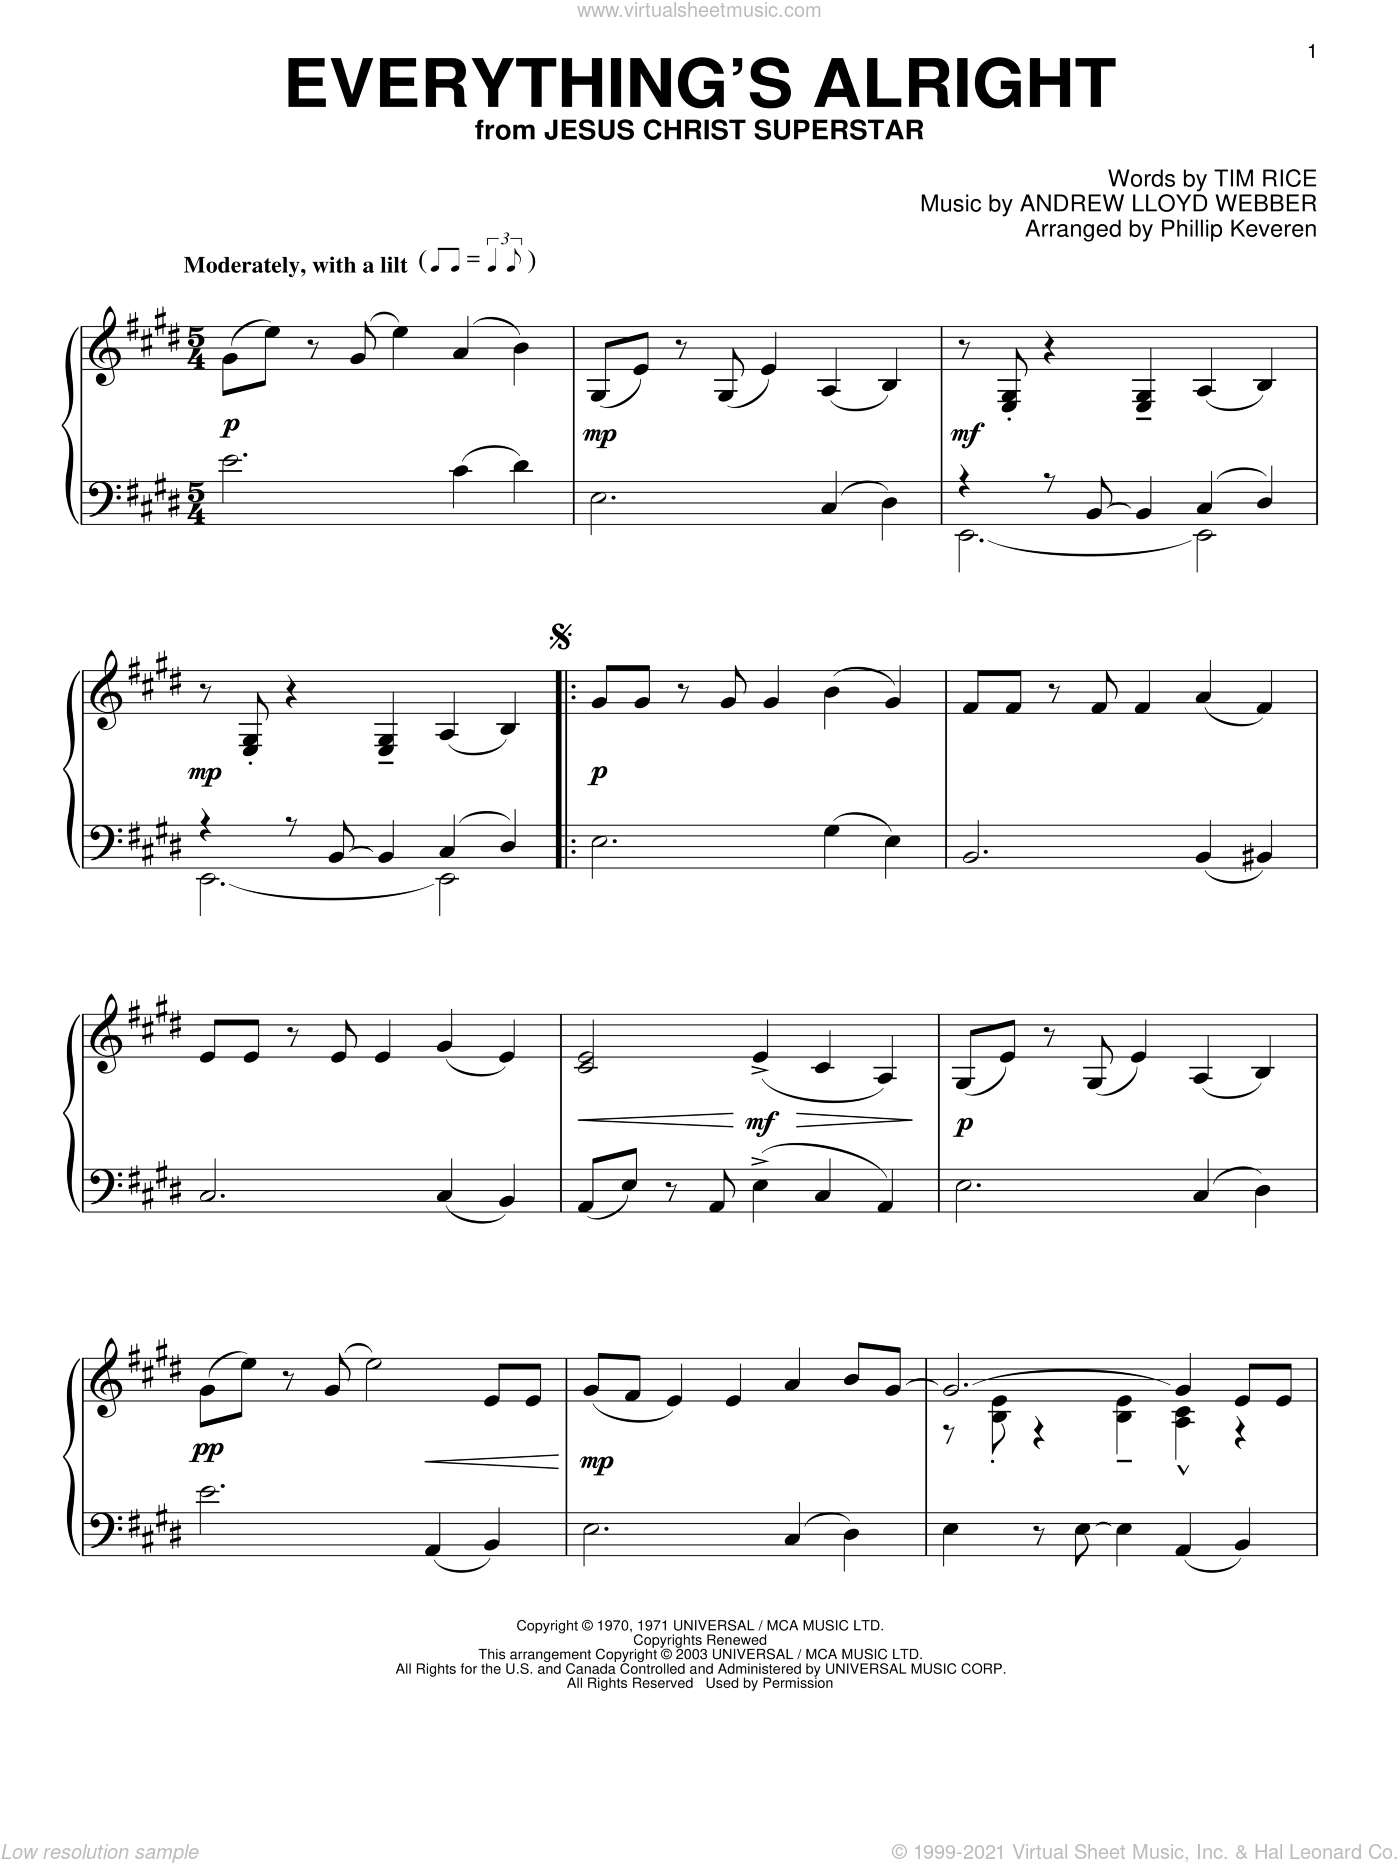 Everything's Alright sheet music for piano solo by Andrew Lloyd Webber, Phillip Keveren, Jesus Christ Superstar (Musical) and Tim Rice, intermediate skill level